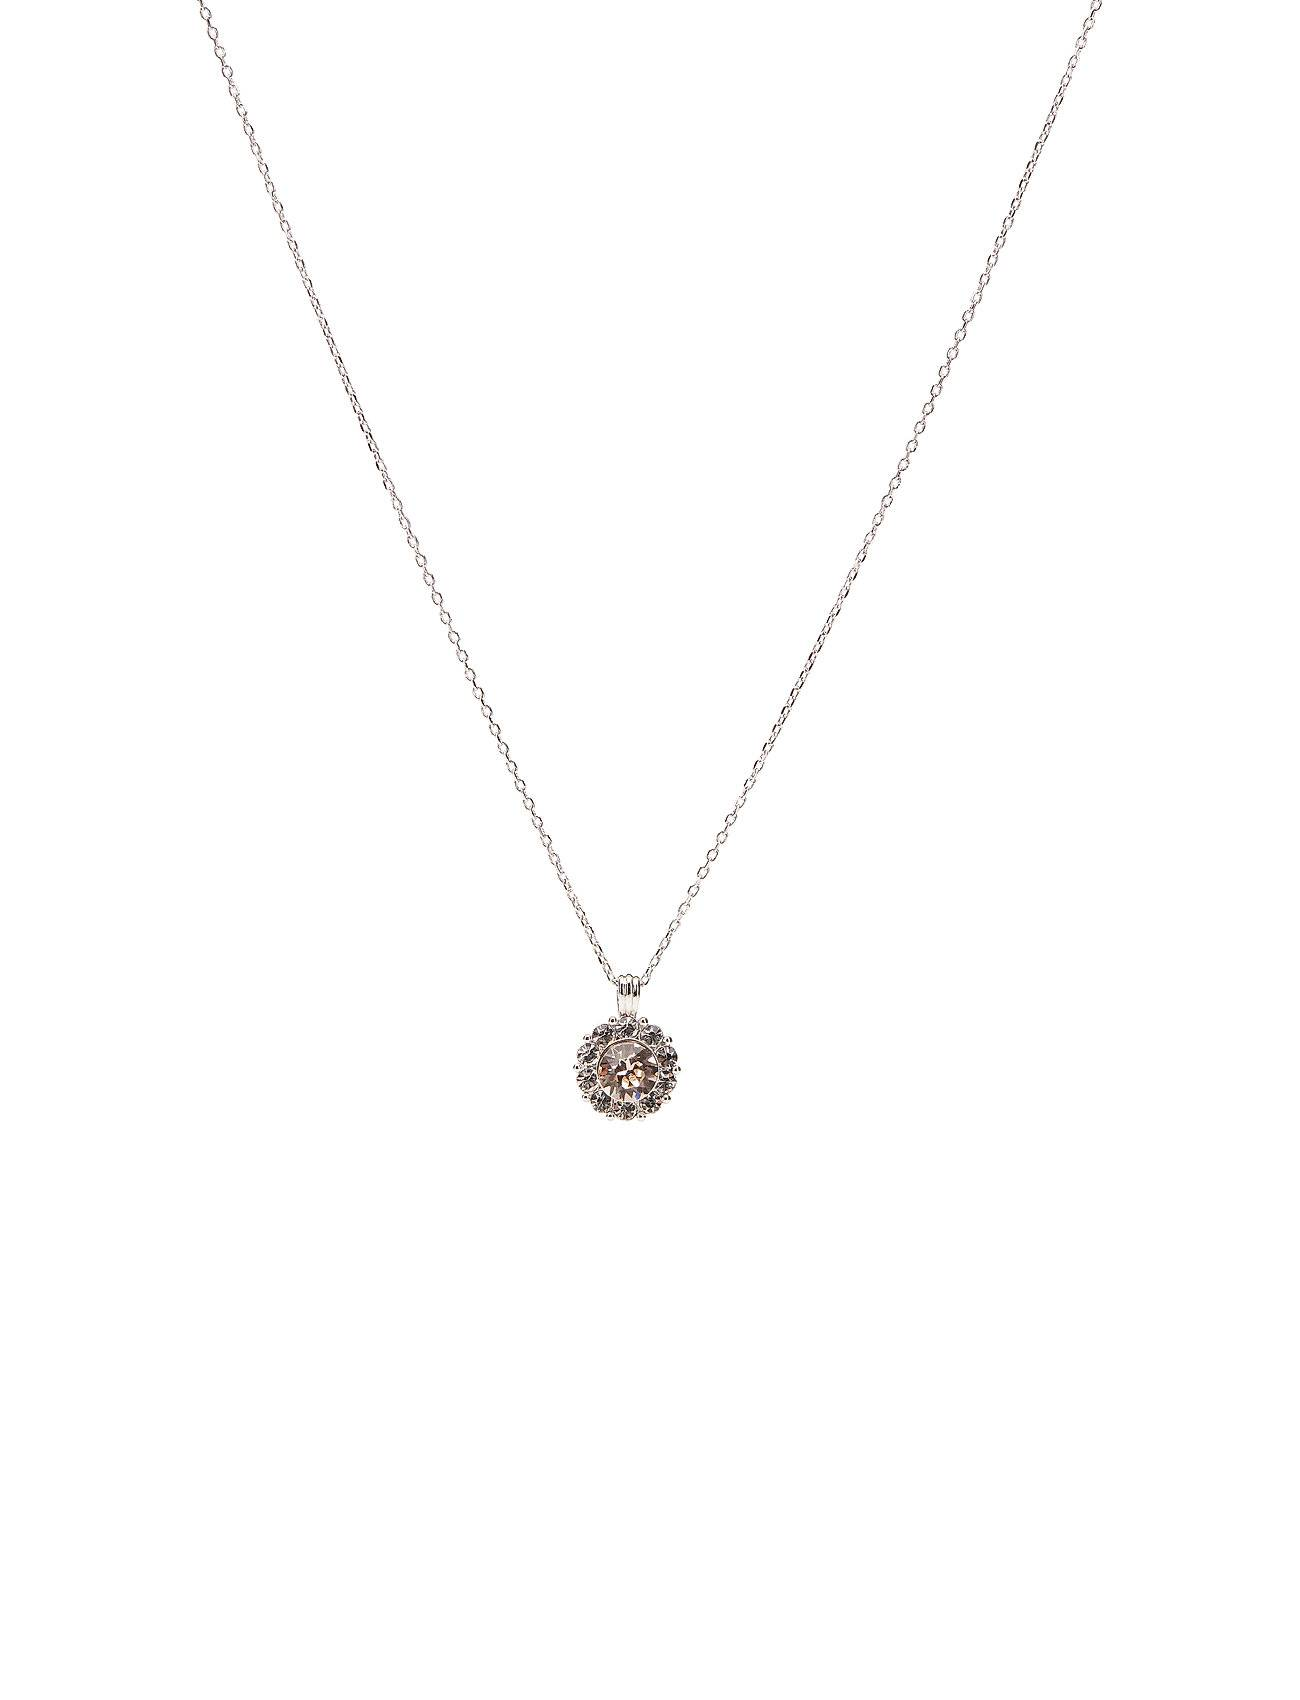 LILY AND ROSE Sofia Necklace - Silk Accessories Jewellery Necklaces Dainty Necklaces Beige LILY AND ROSE